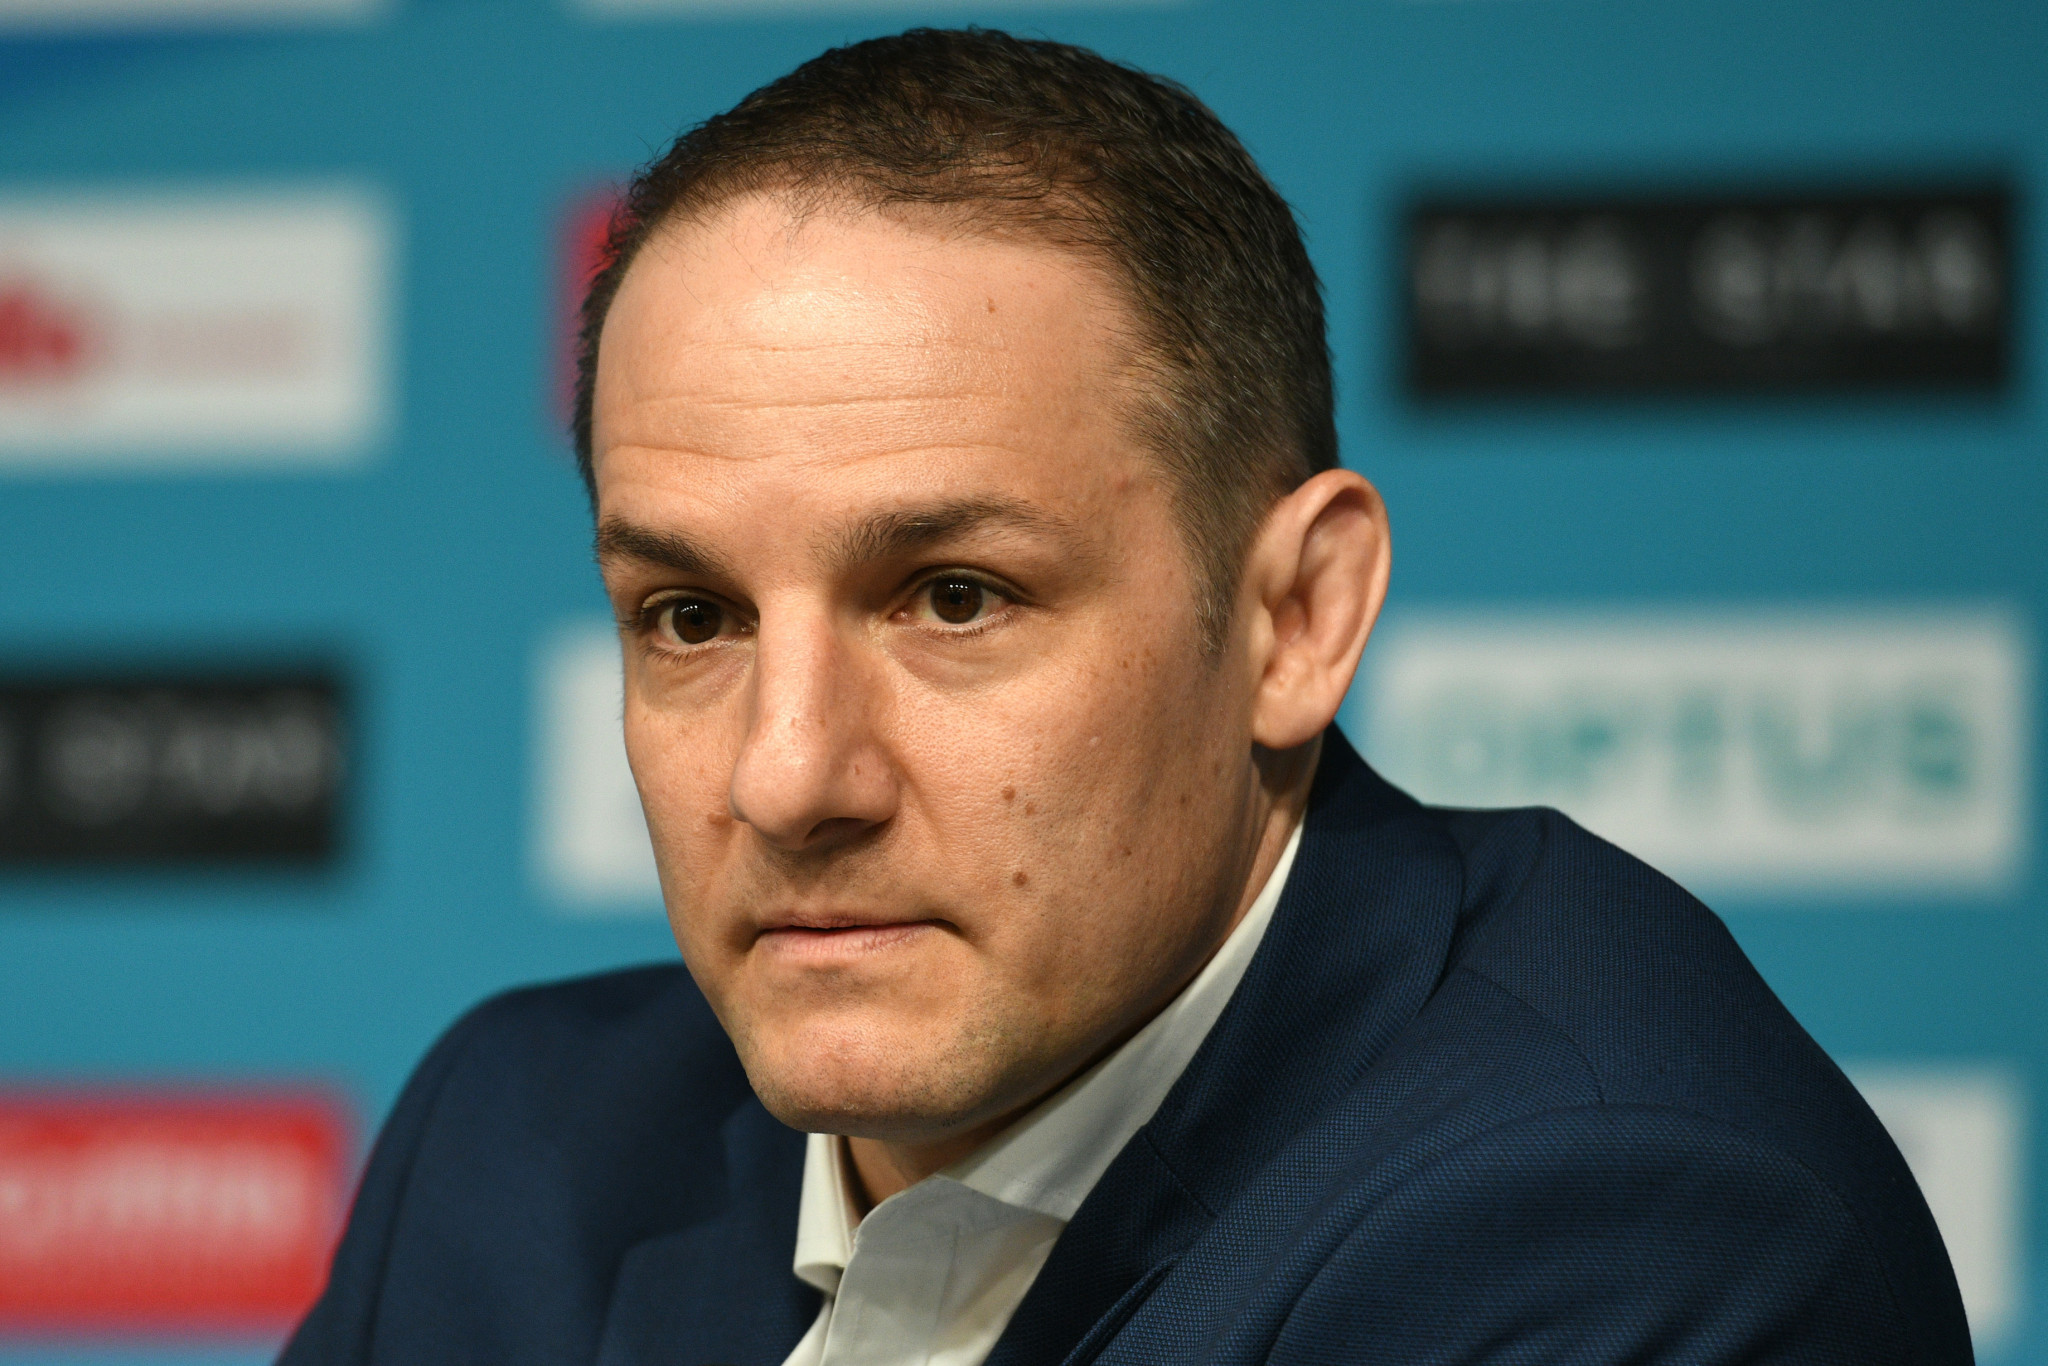 Grevemberg stepping down as Commonwealth Games Federation chief executive